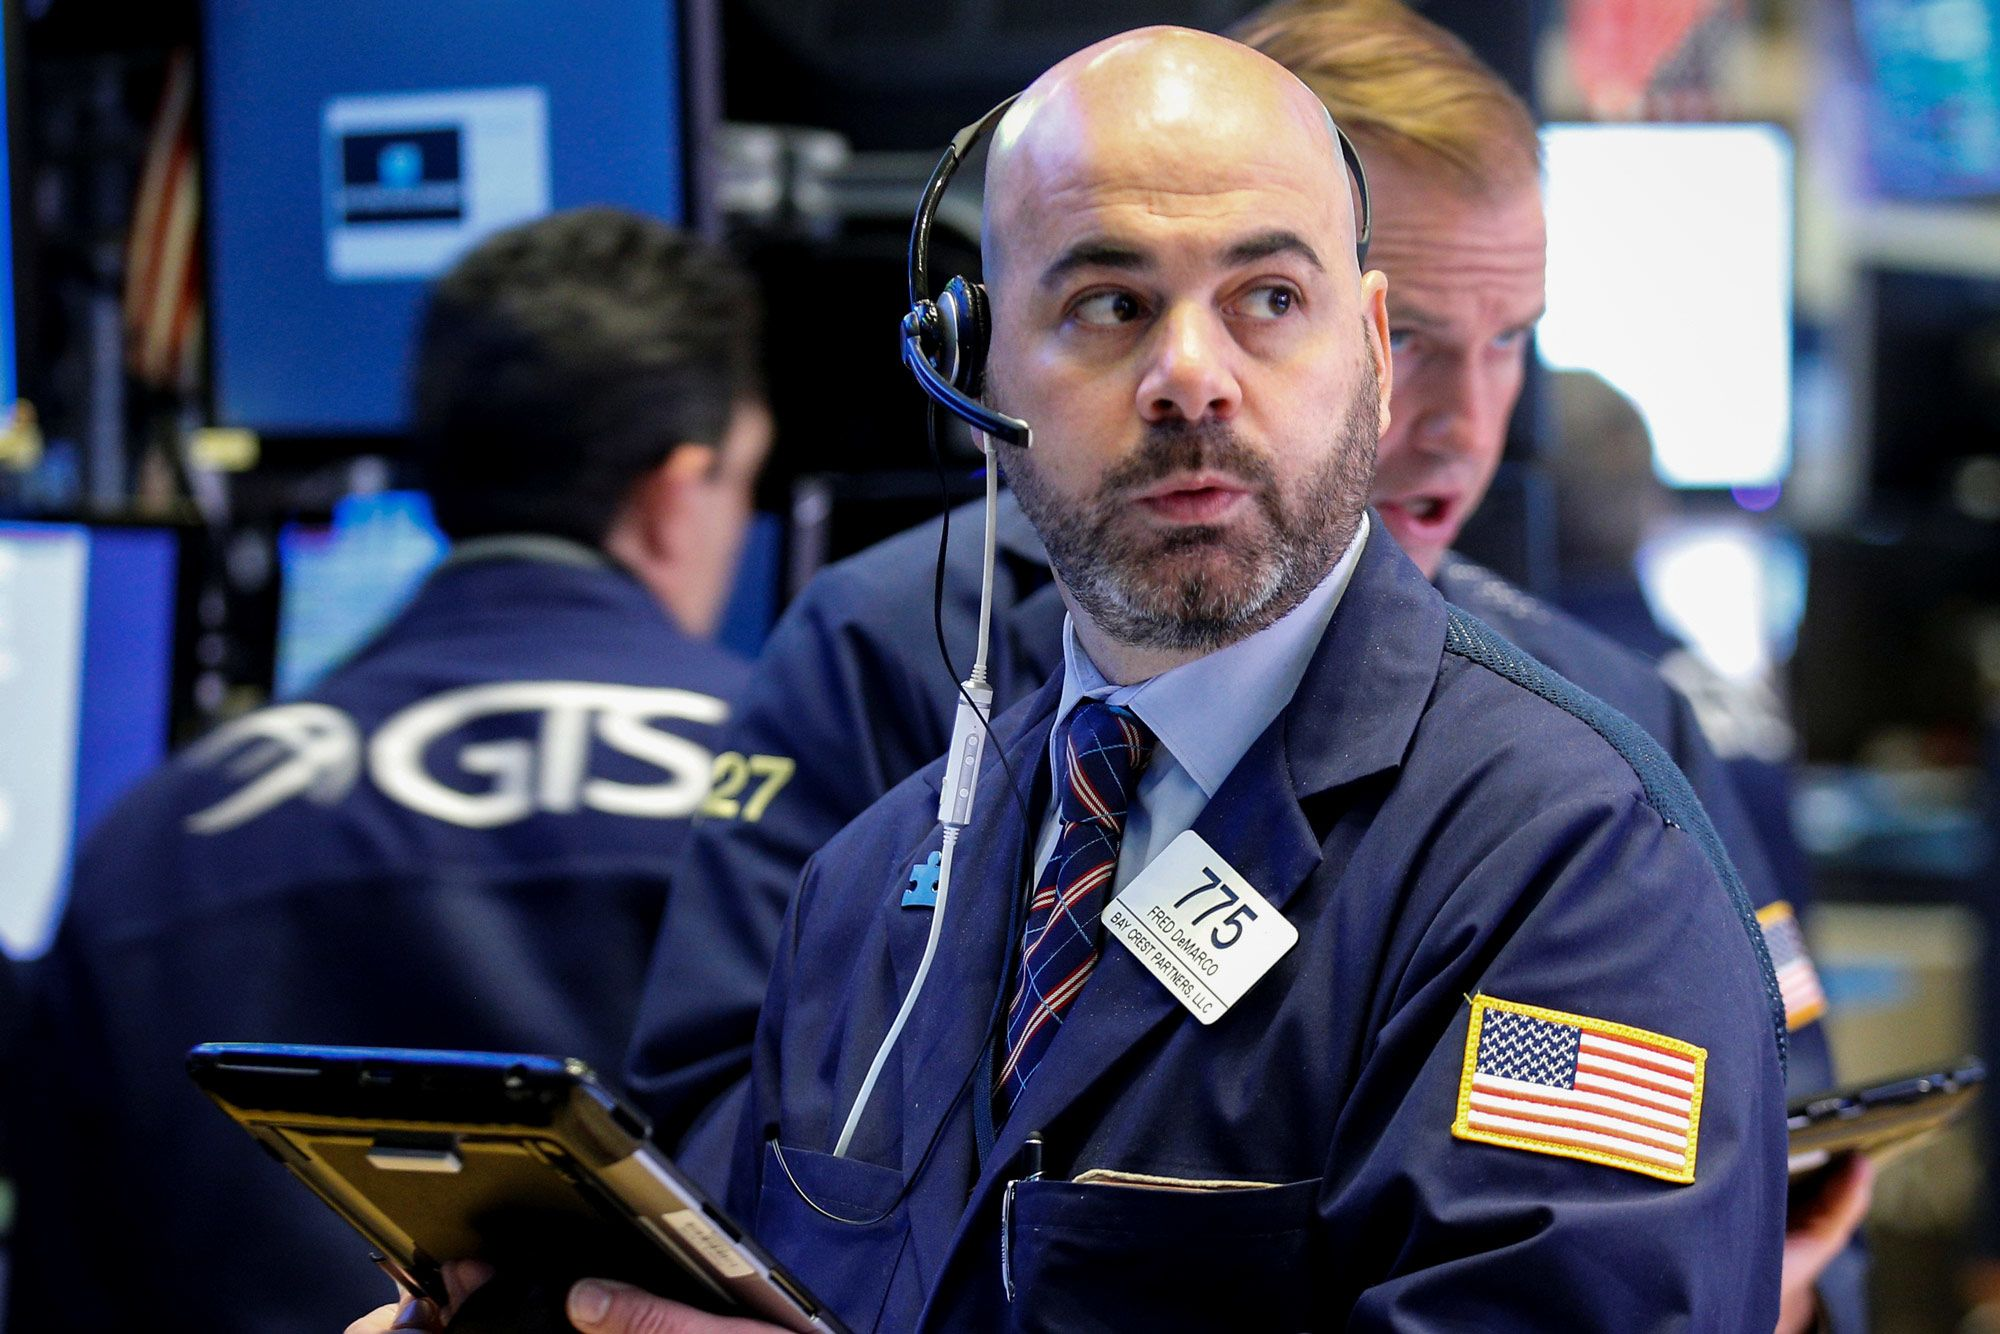 Here are the stocks Wall Street is worried most about if a full-blown trade war breaks out